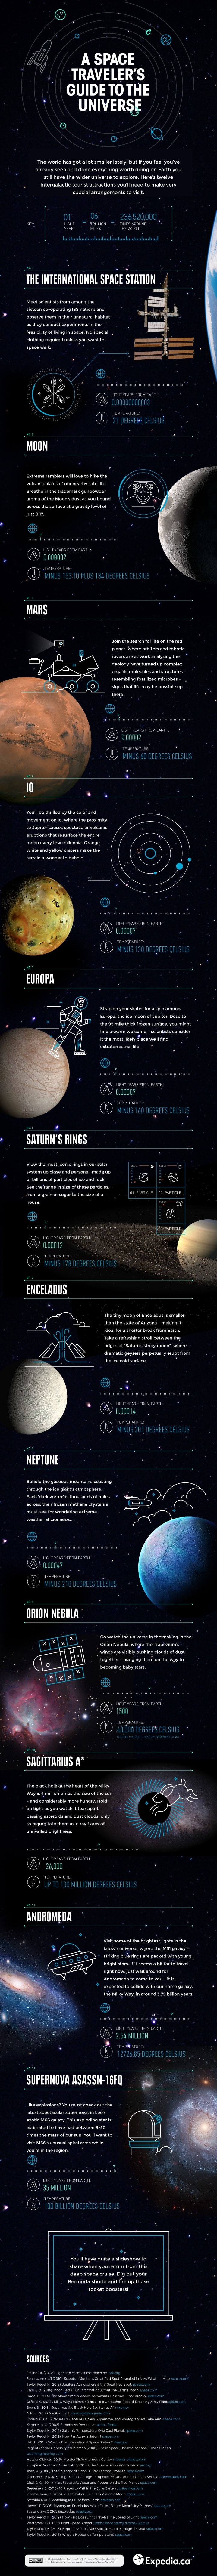 a_space_travelers_guide-min